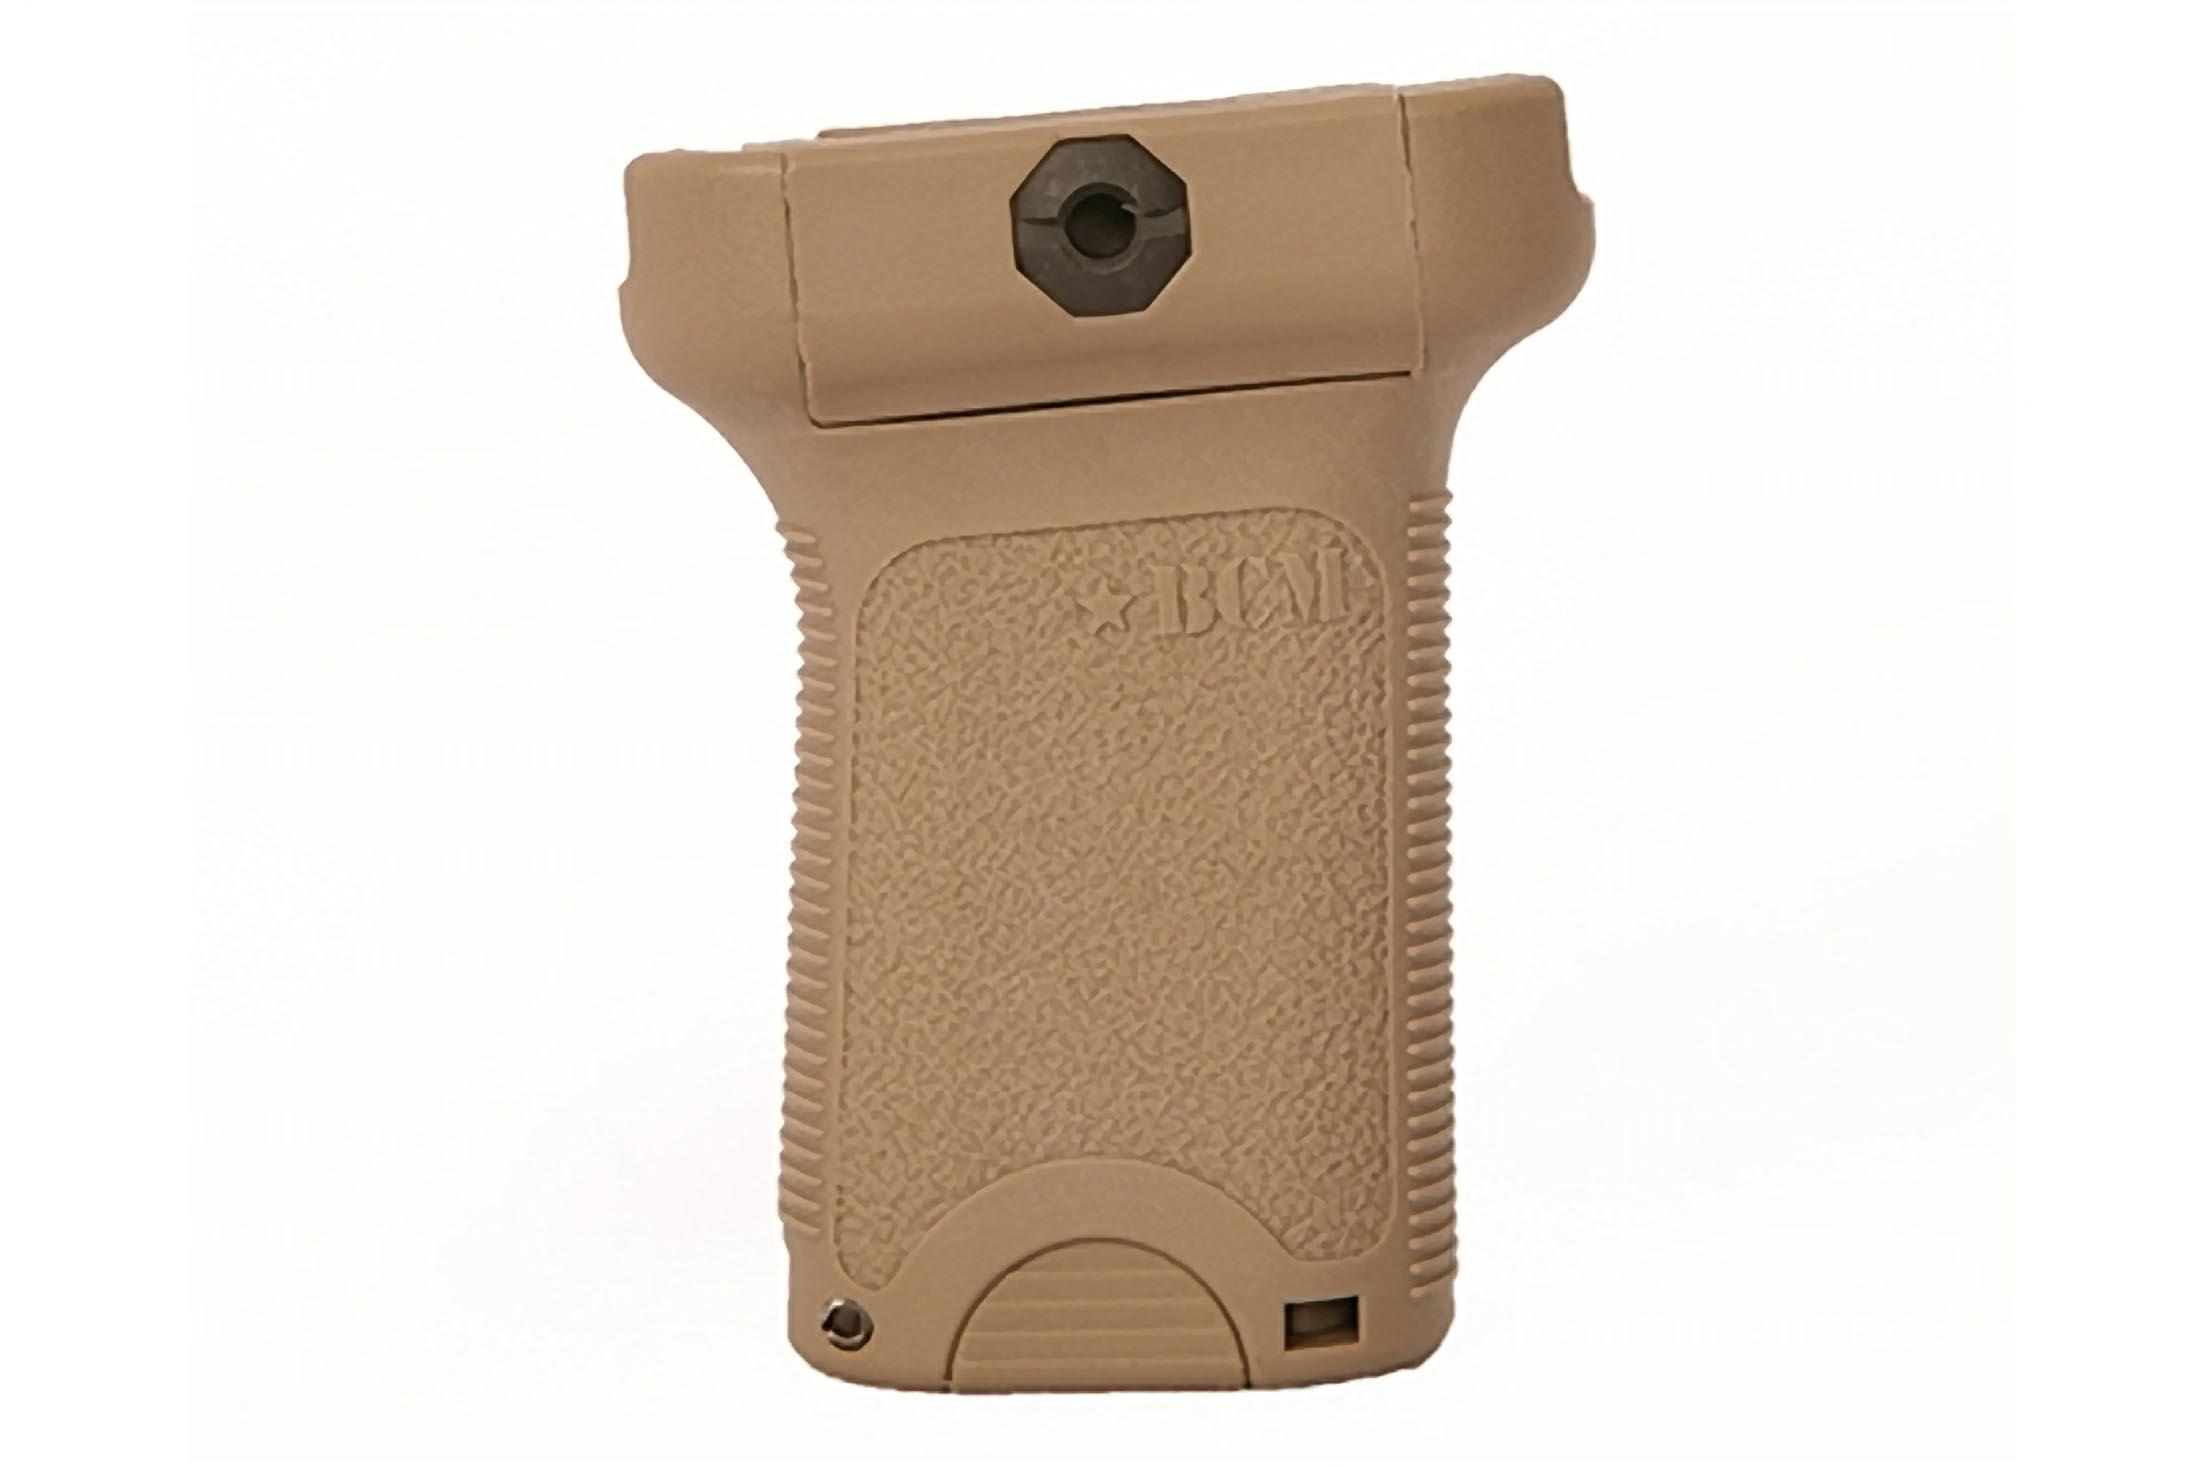 The BCM Gunfighter vertical grip short in FDE polymer is designed for picatinny rails